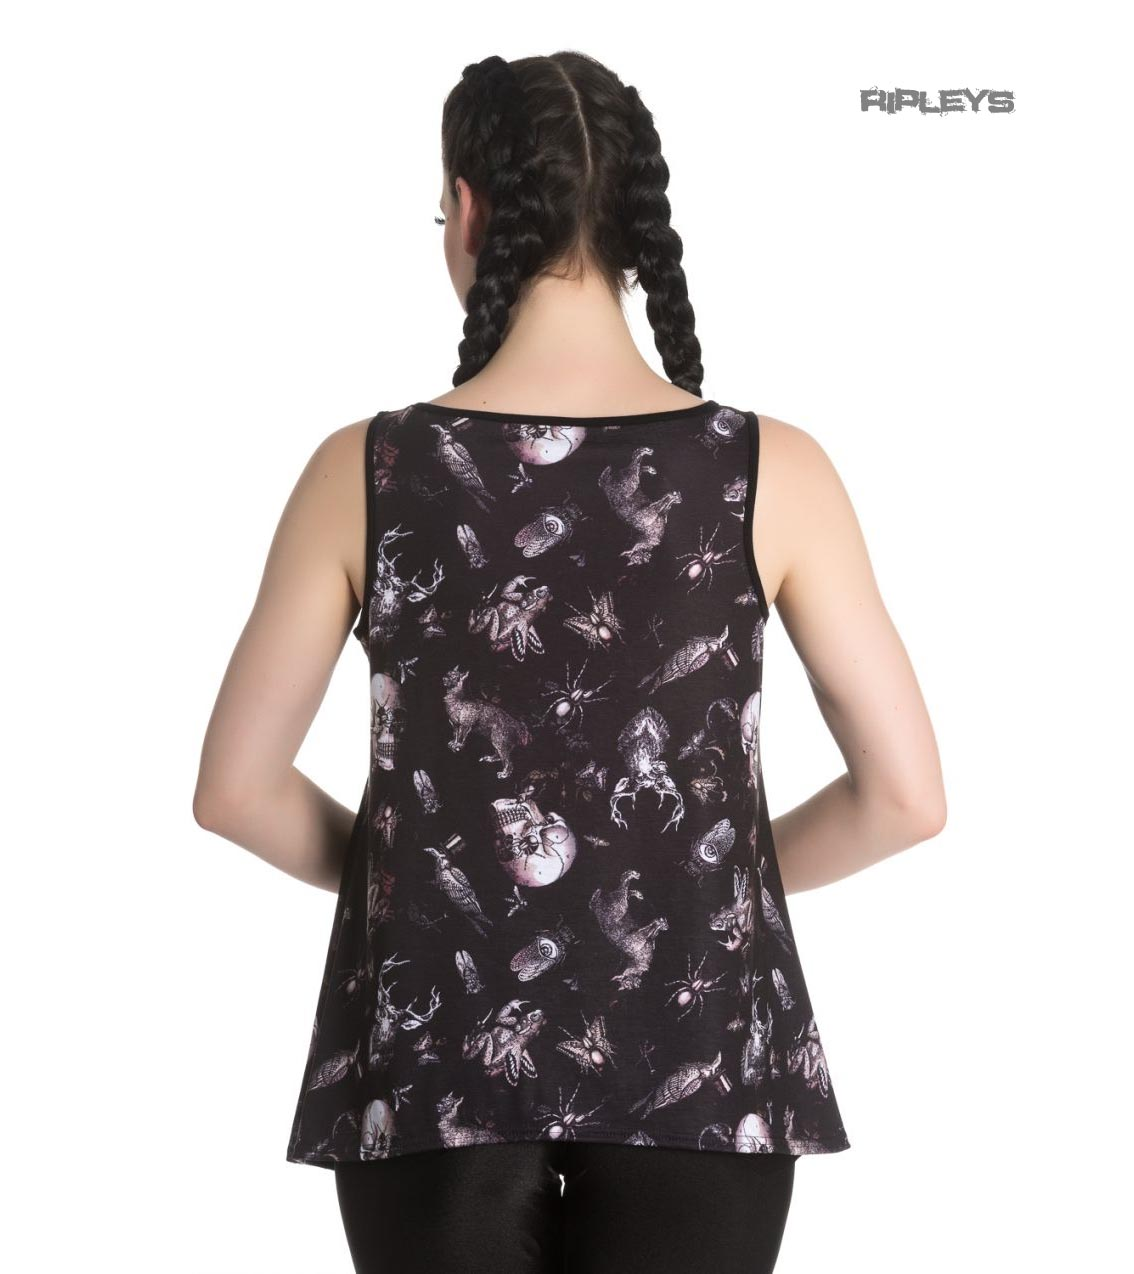 Hell-Bunny-Black-Vest-Cami-Top-Goth-Witch-DARWIN-Taxidermy-Skulls-All-Sizes thumbnail 8